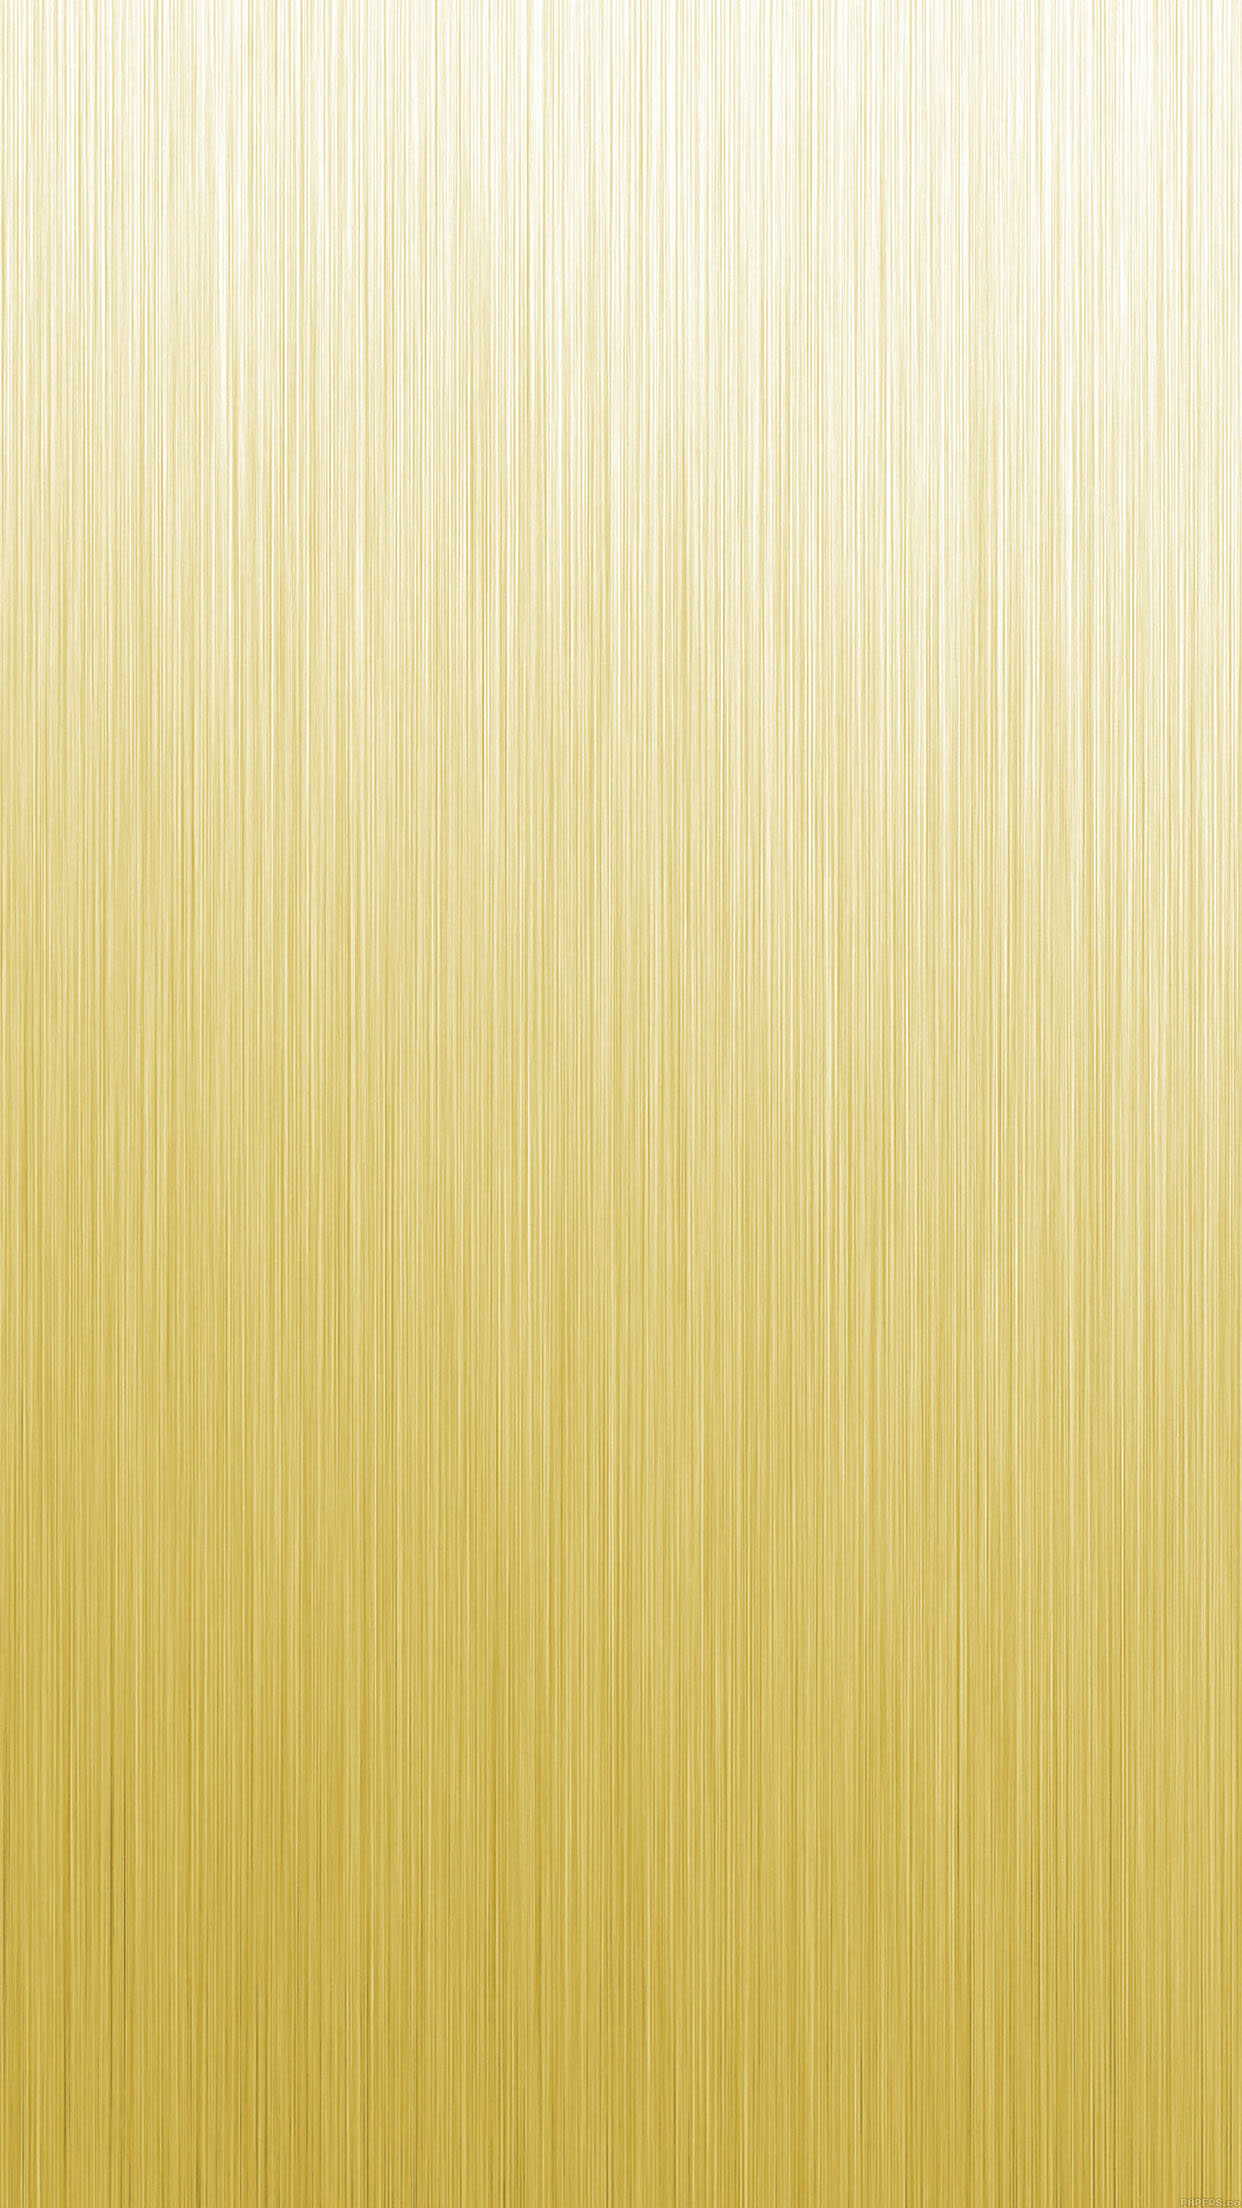 Papers Co Iphone Wallpaper Va02 Gold Rush Minimal Texture